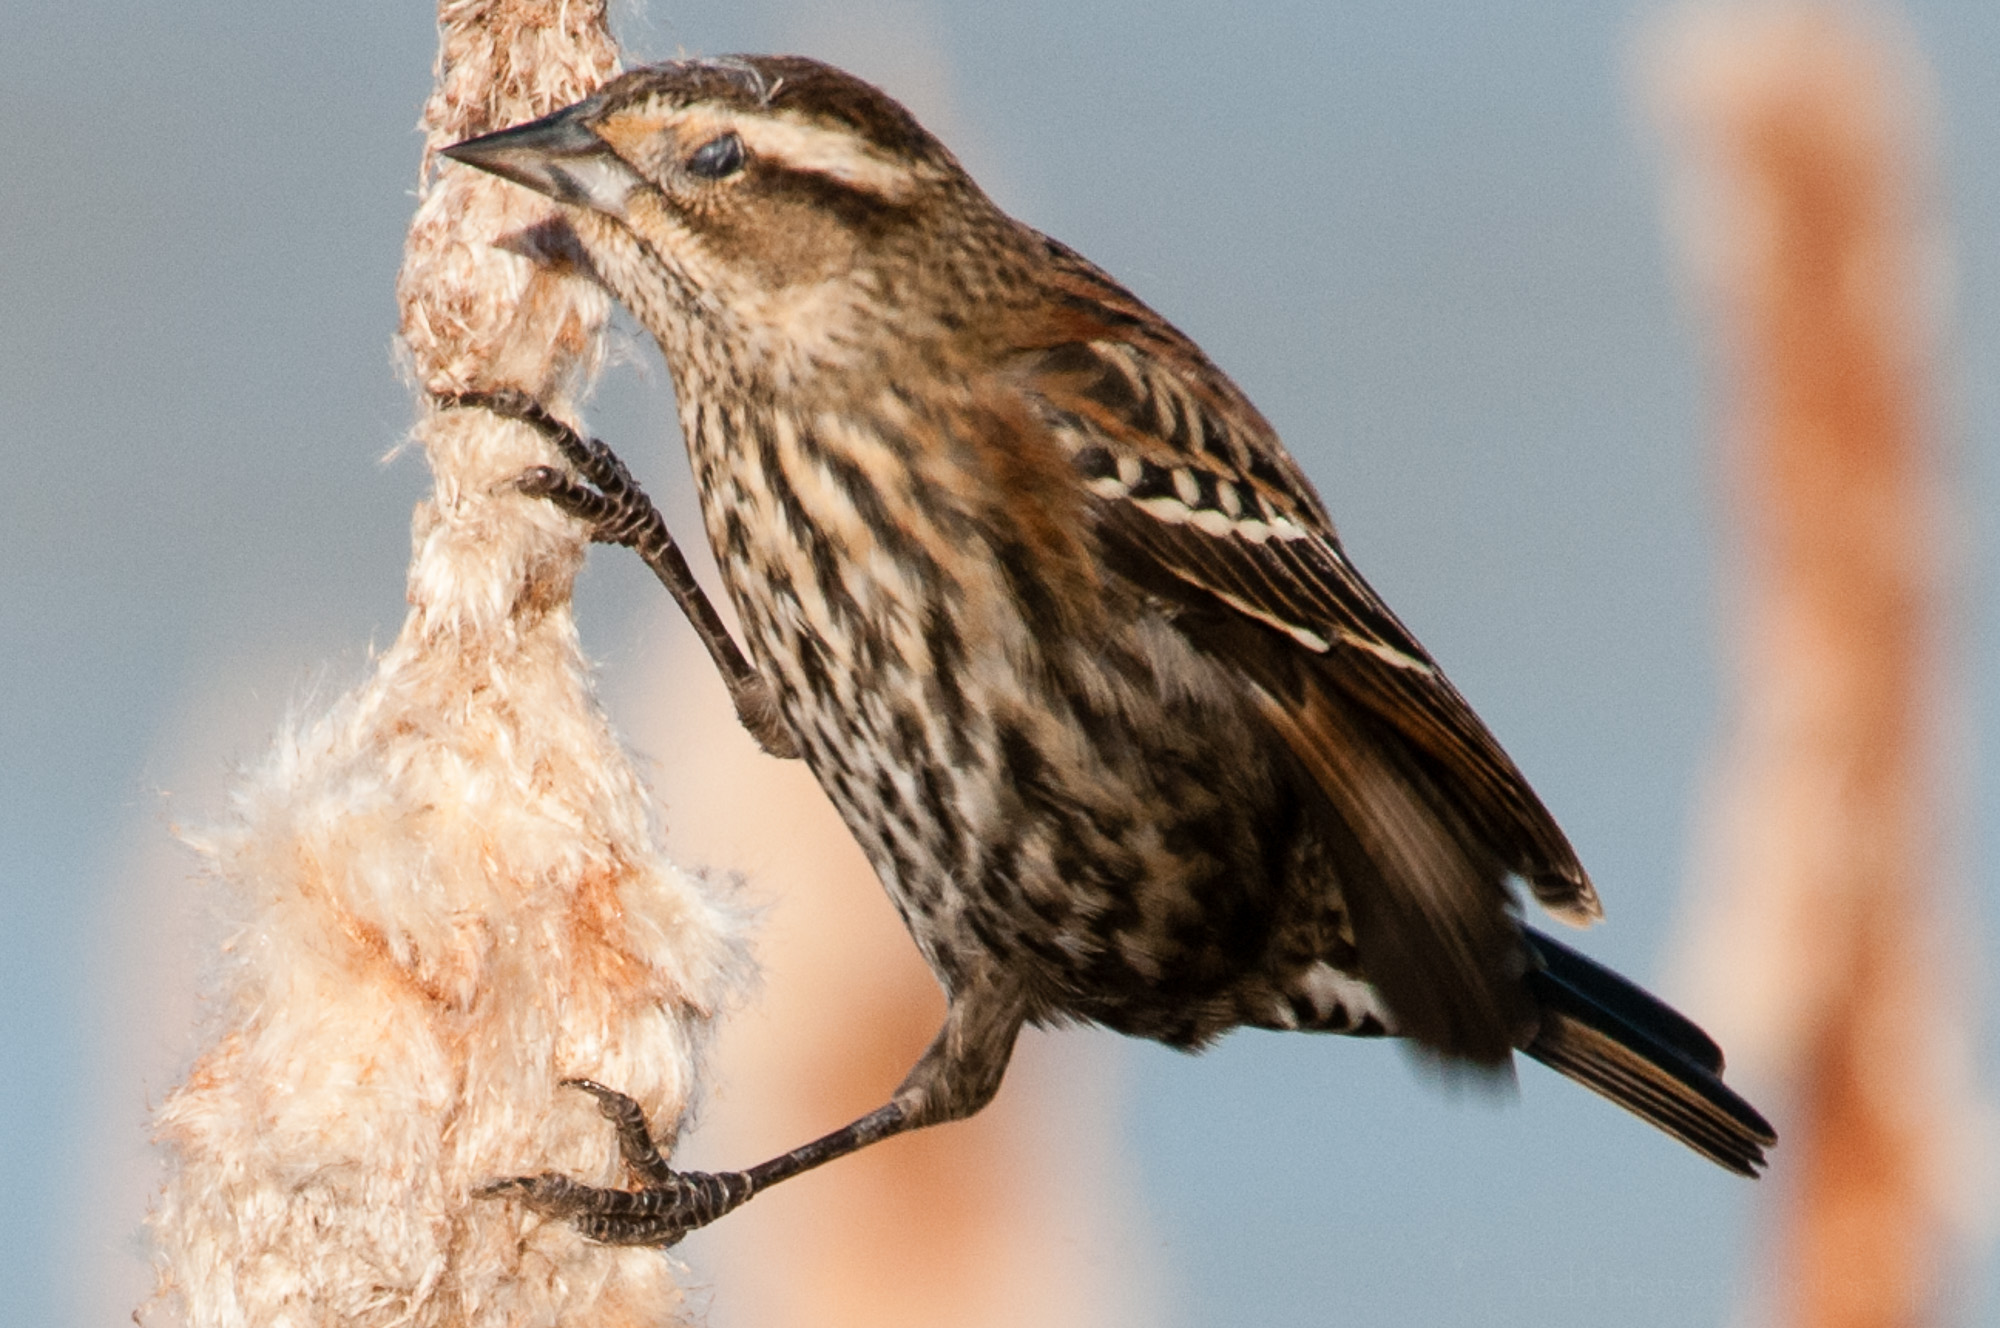 Example of nictitating membrane protecting female red-winged blackbird's eye from debris.